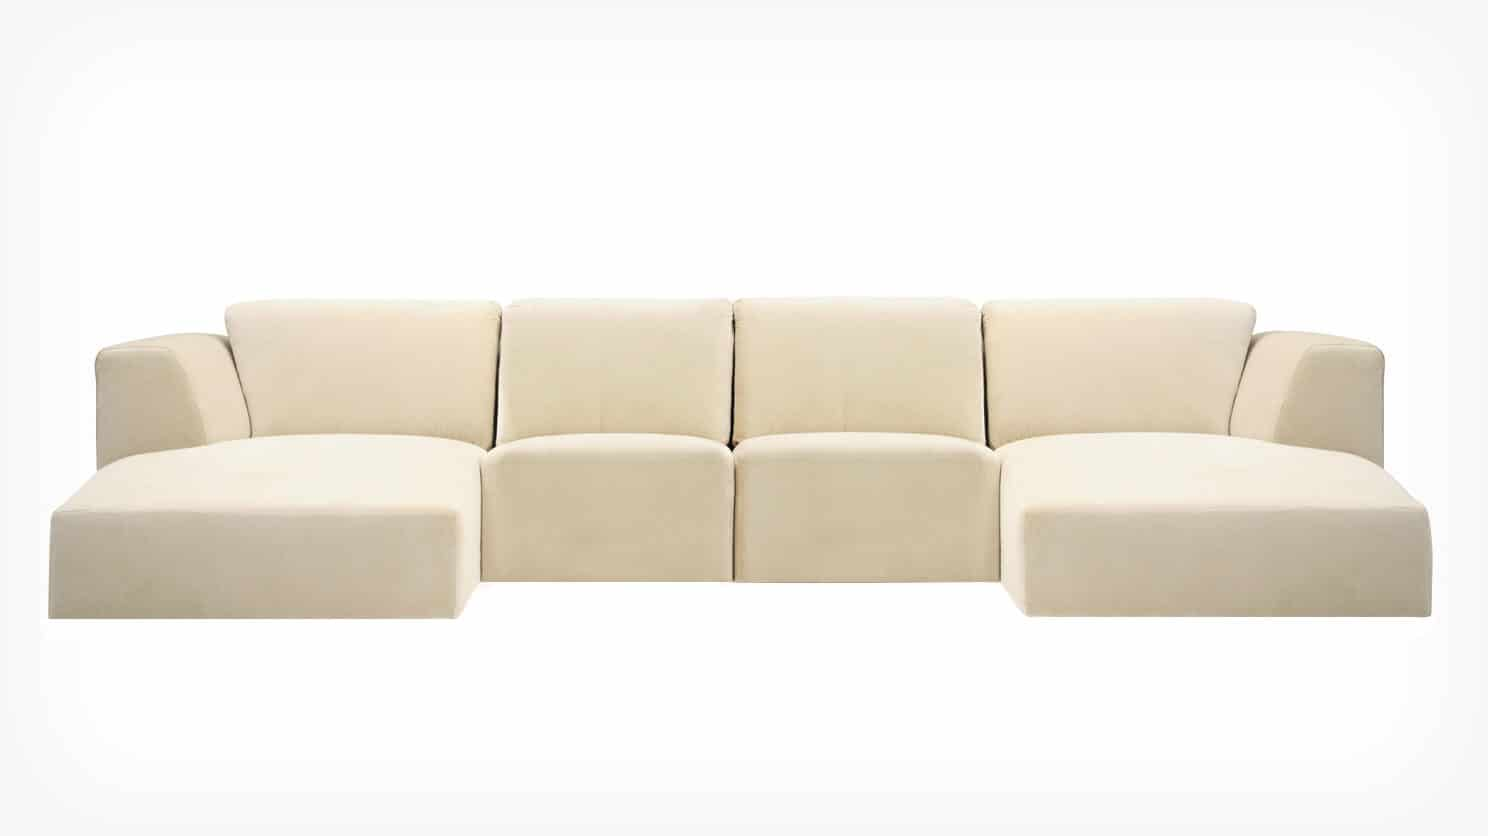 30026 16 10x2  1 sectionals morten 4 piece w chaise disco fabric